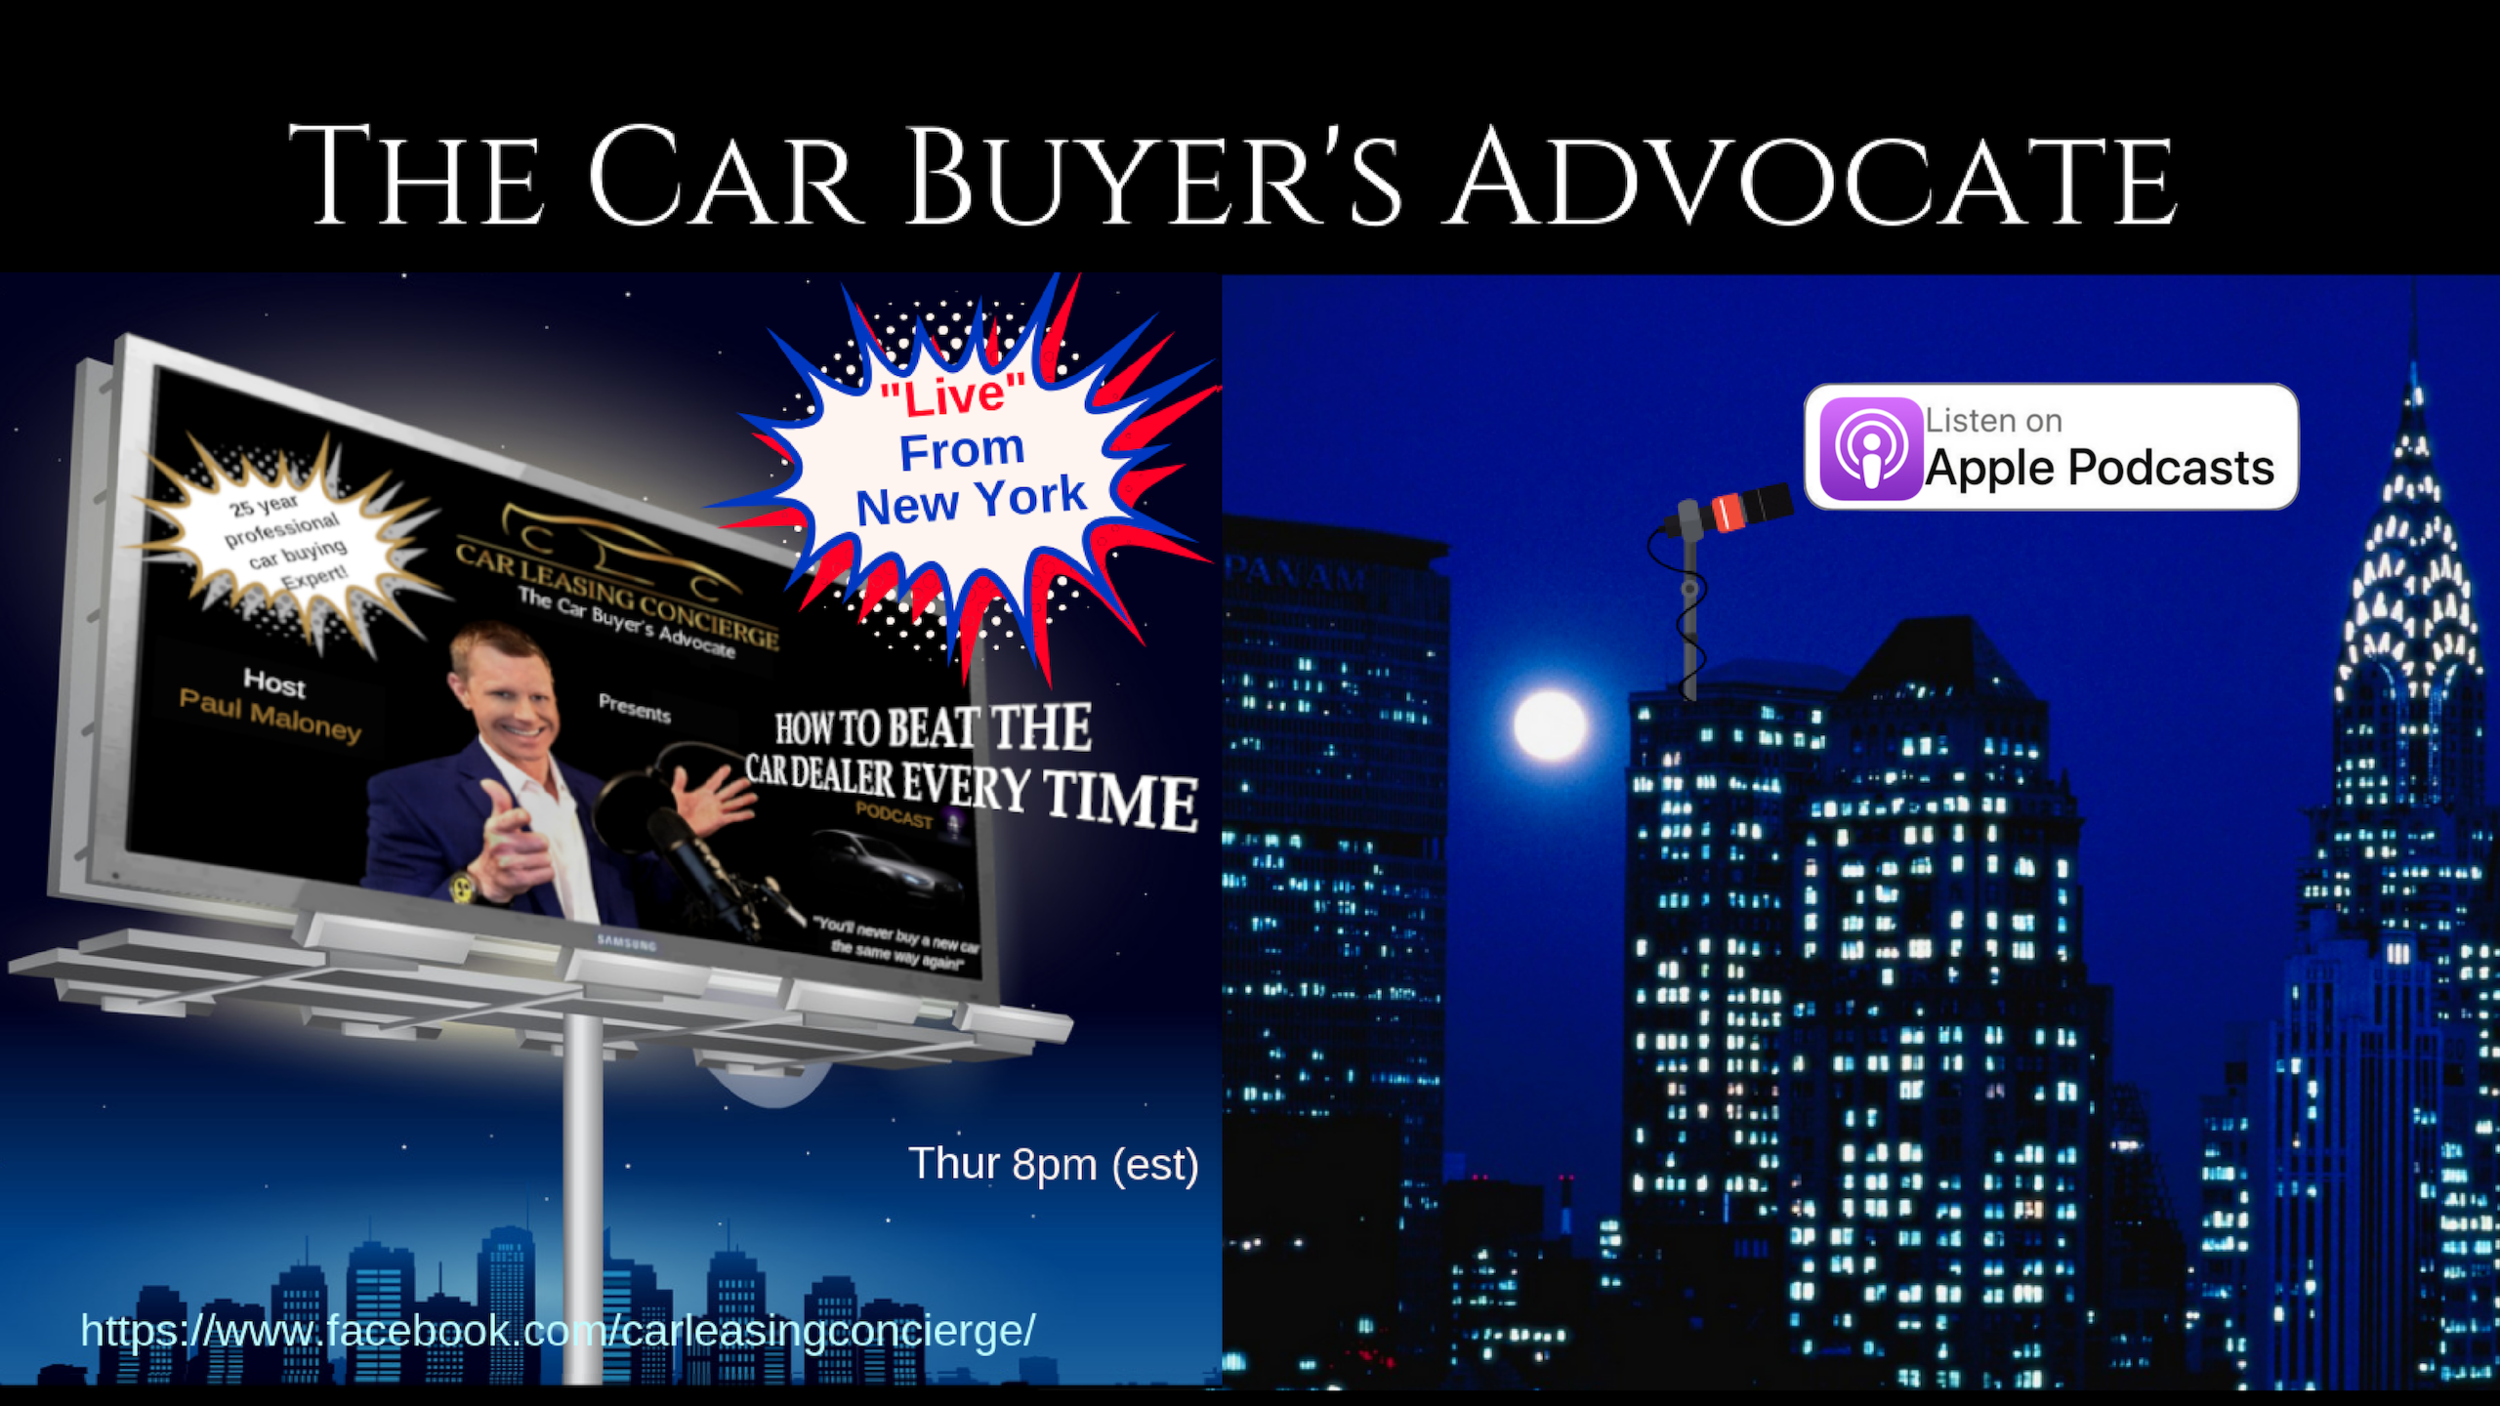 Paul Maloney THE Car Buyer's Advocate!